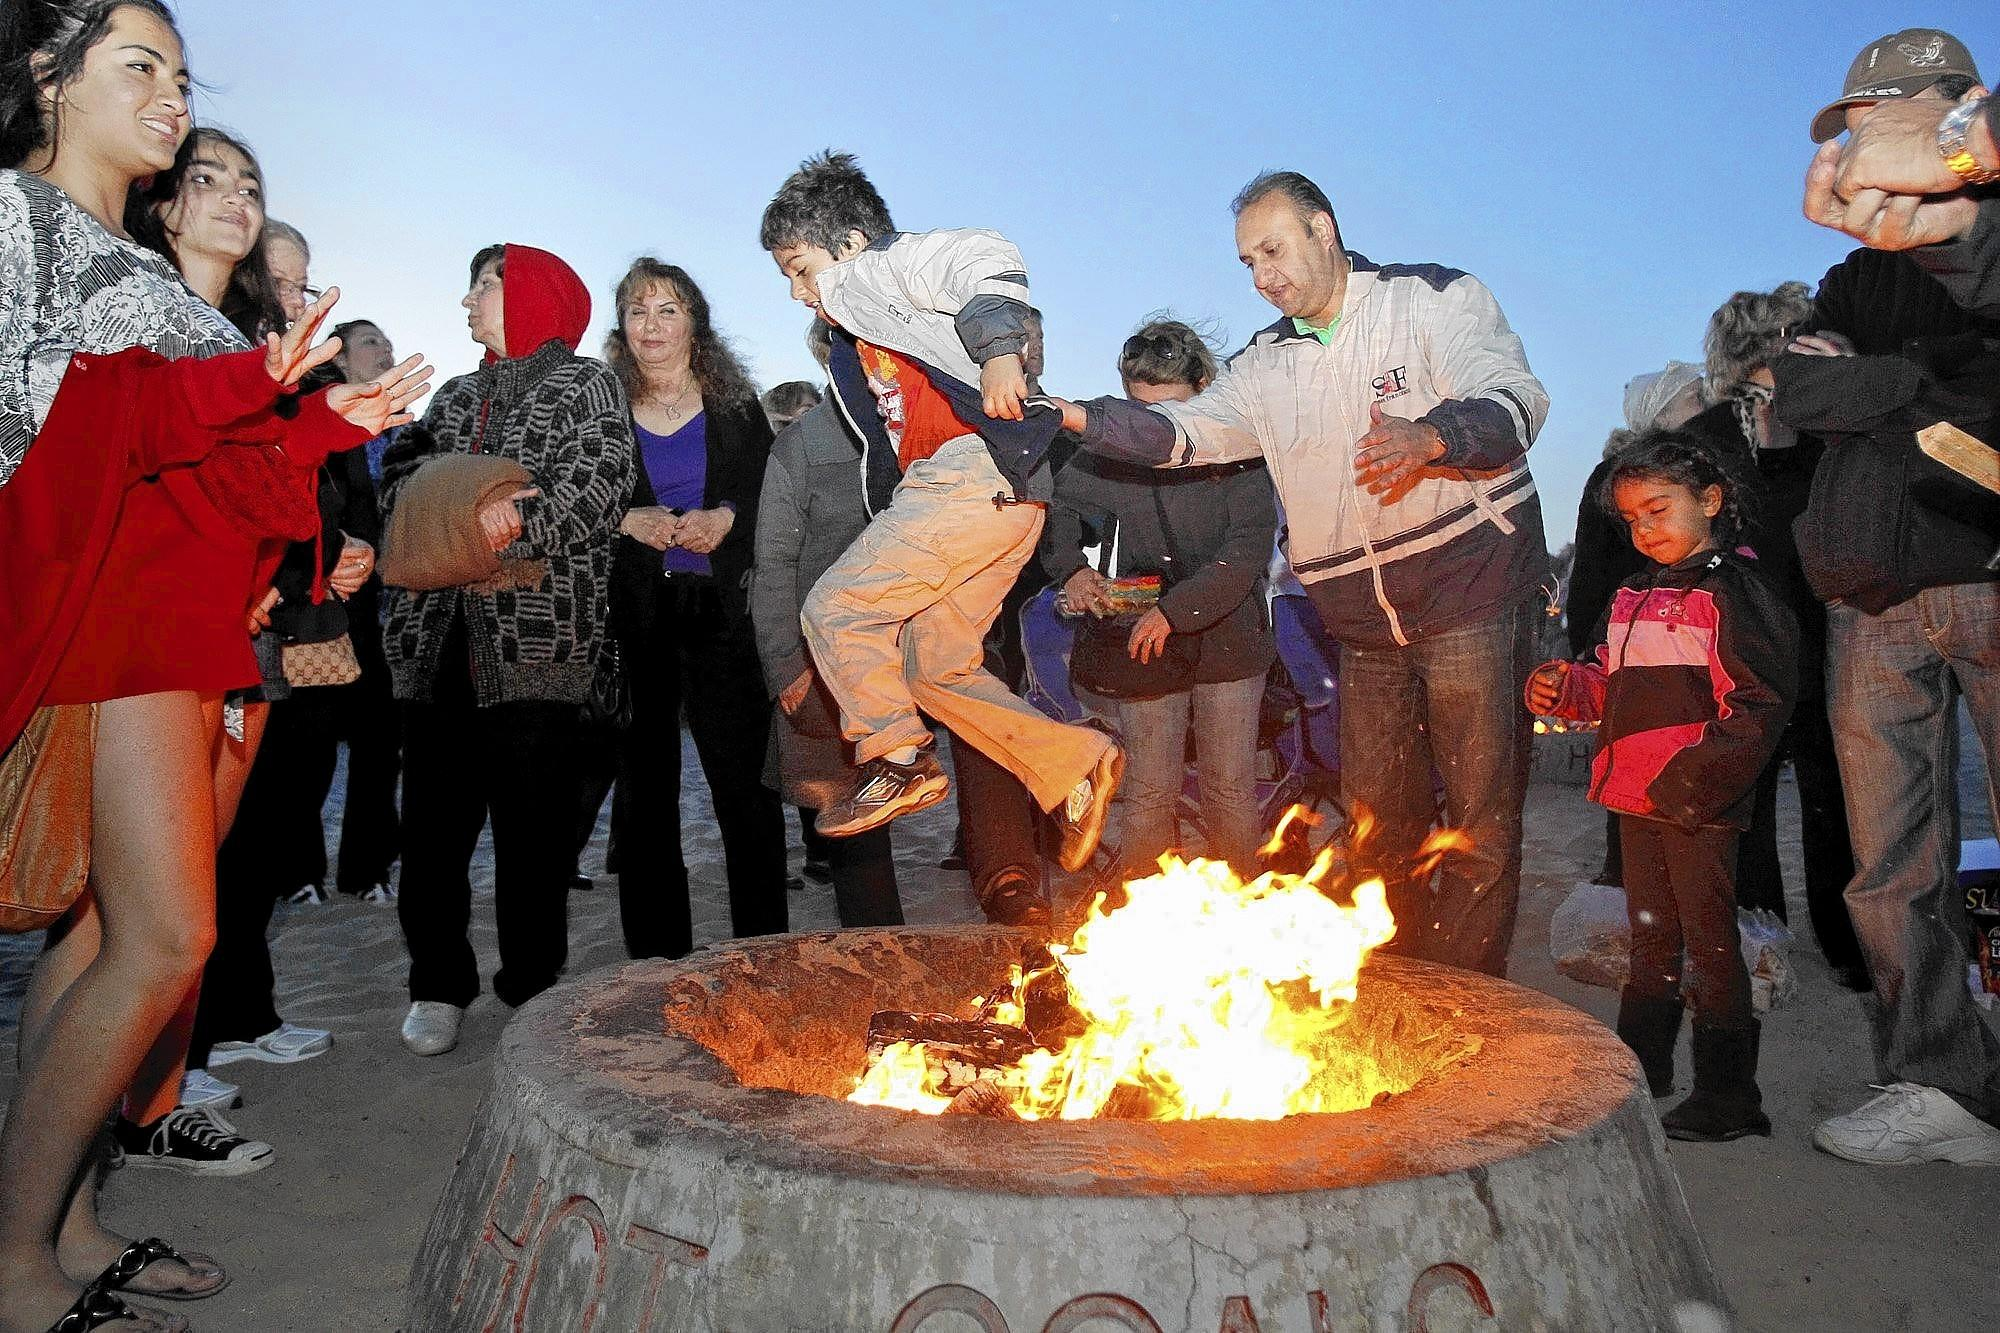 Kianoush Hamadani, center right, of Irvine, helps his son Cameron over a bonfire in celebration of the Persian New Year, know as Norooz, held at Corona del Mar State Beach in 2012.